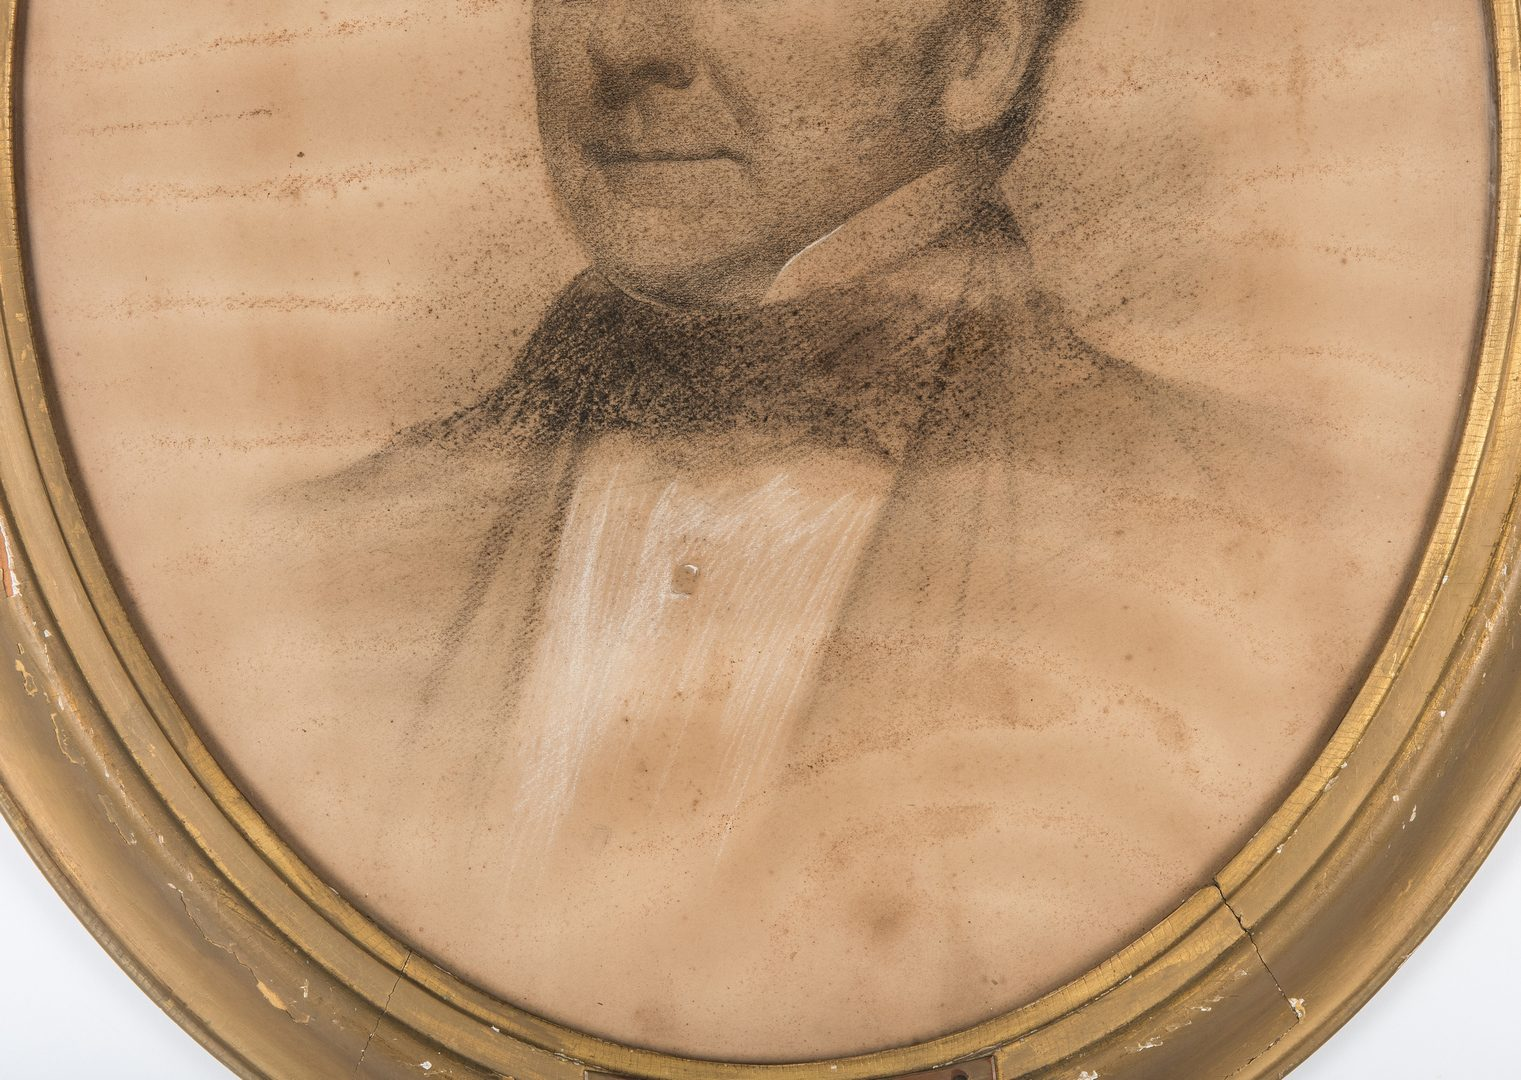 Lot 328: Attrib. Eastman Johnson, Portrait of a Gentleman